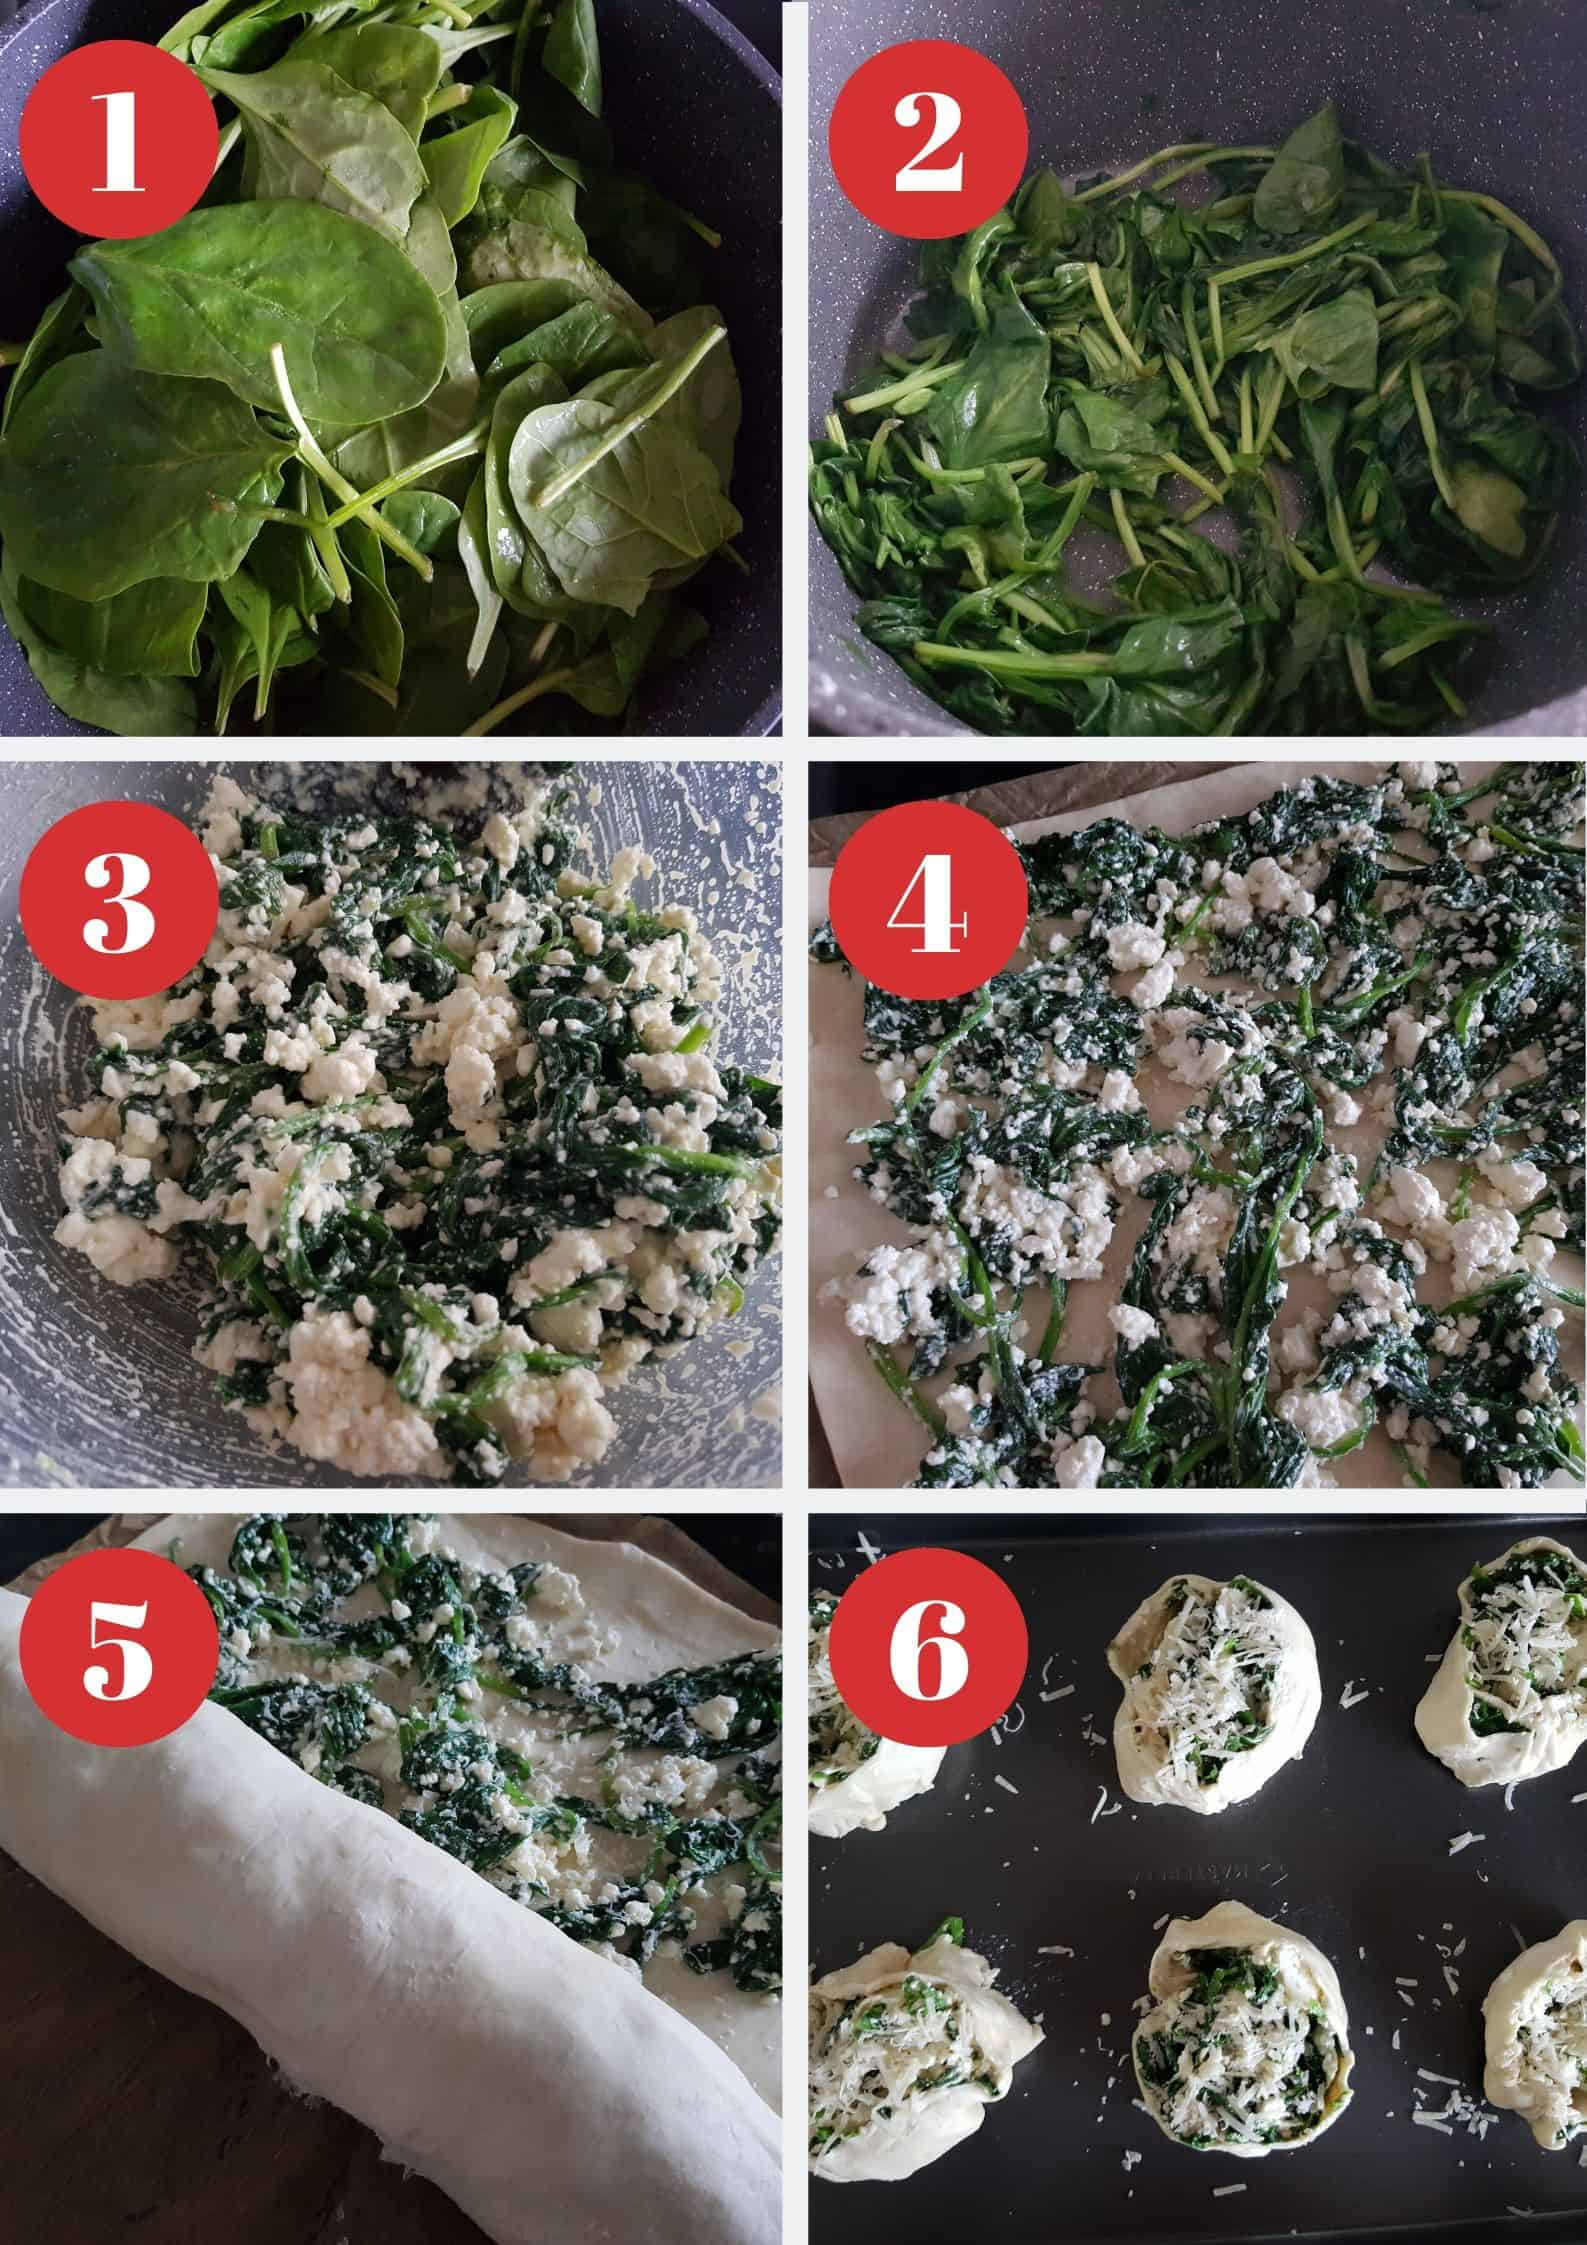 Infographic showing how to make spinach and feta puff pastry pinwheels.